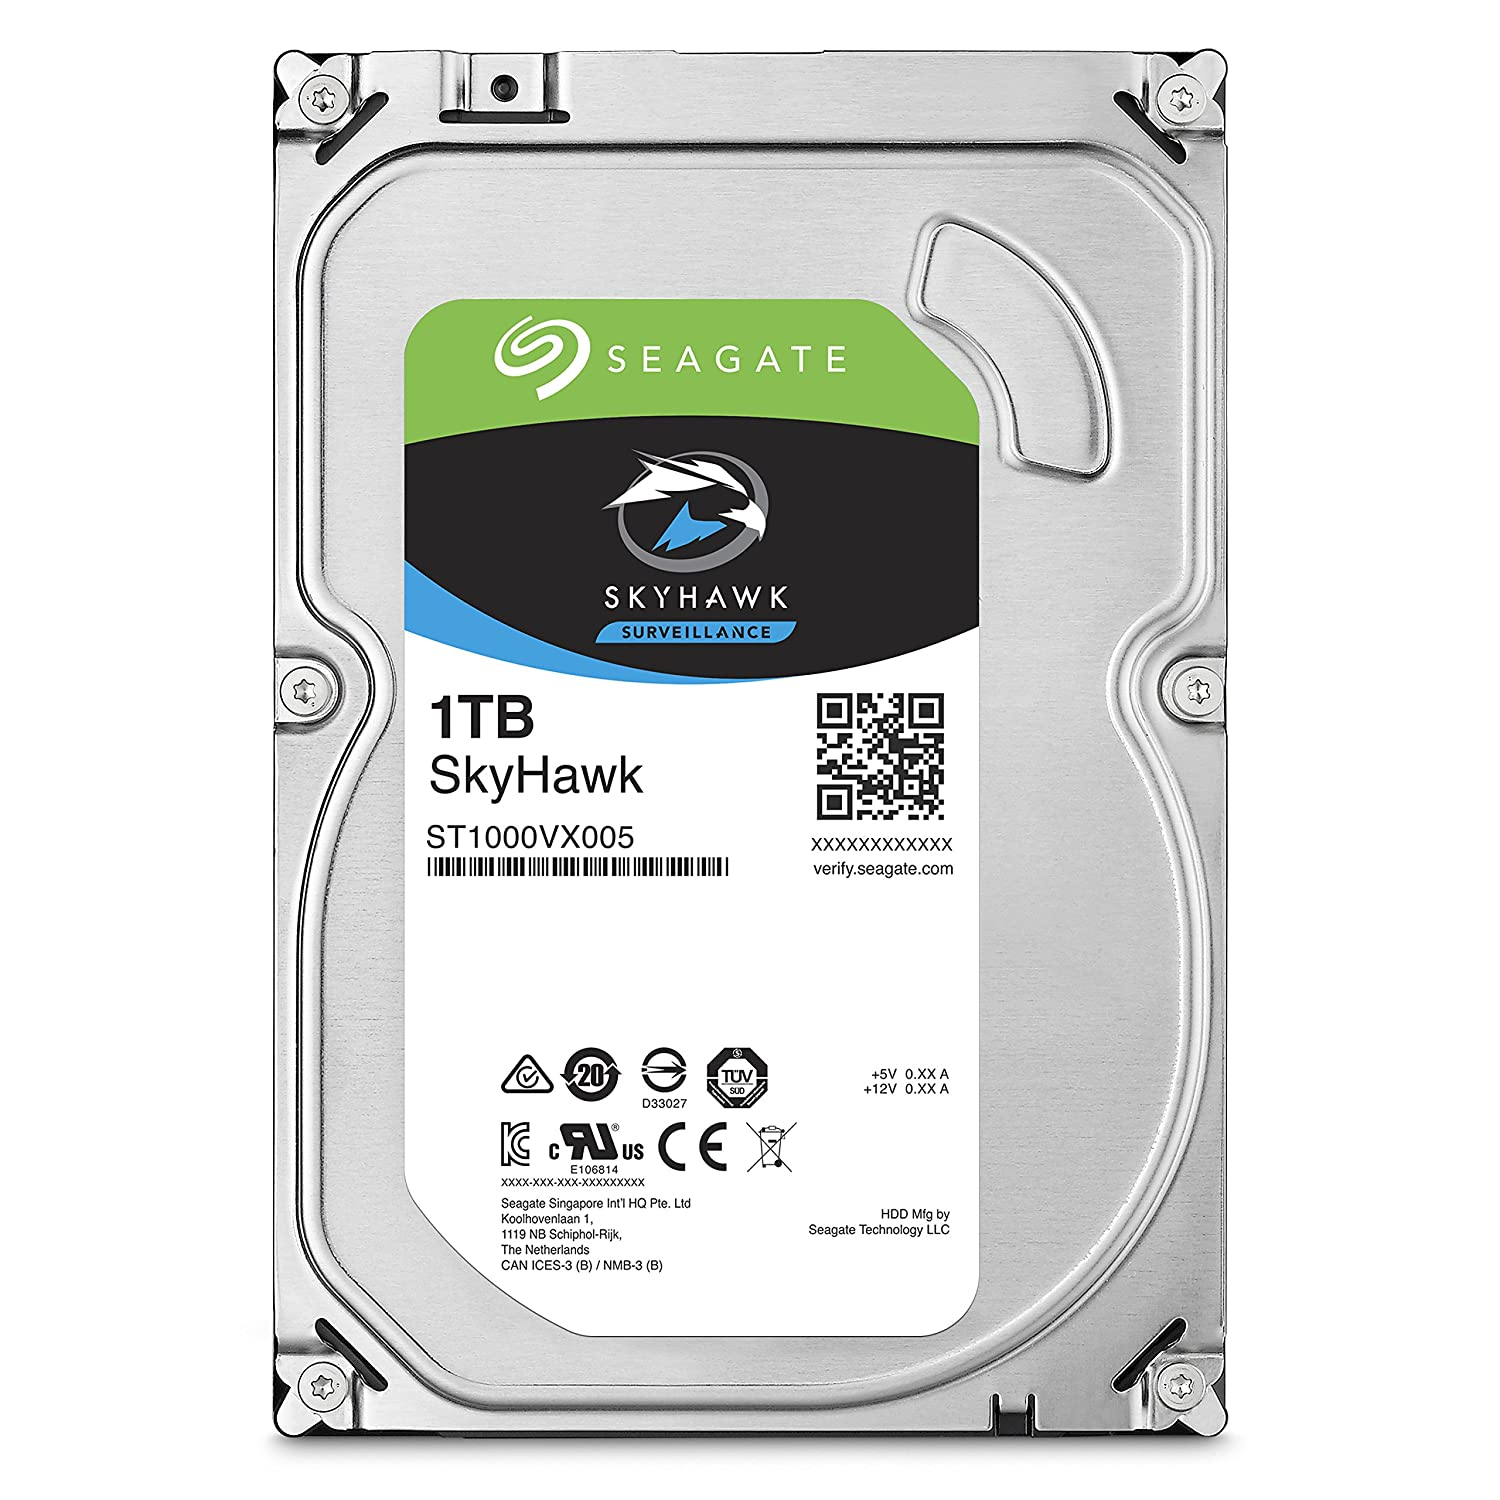 seagate serial number warranty check